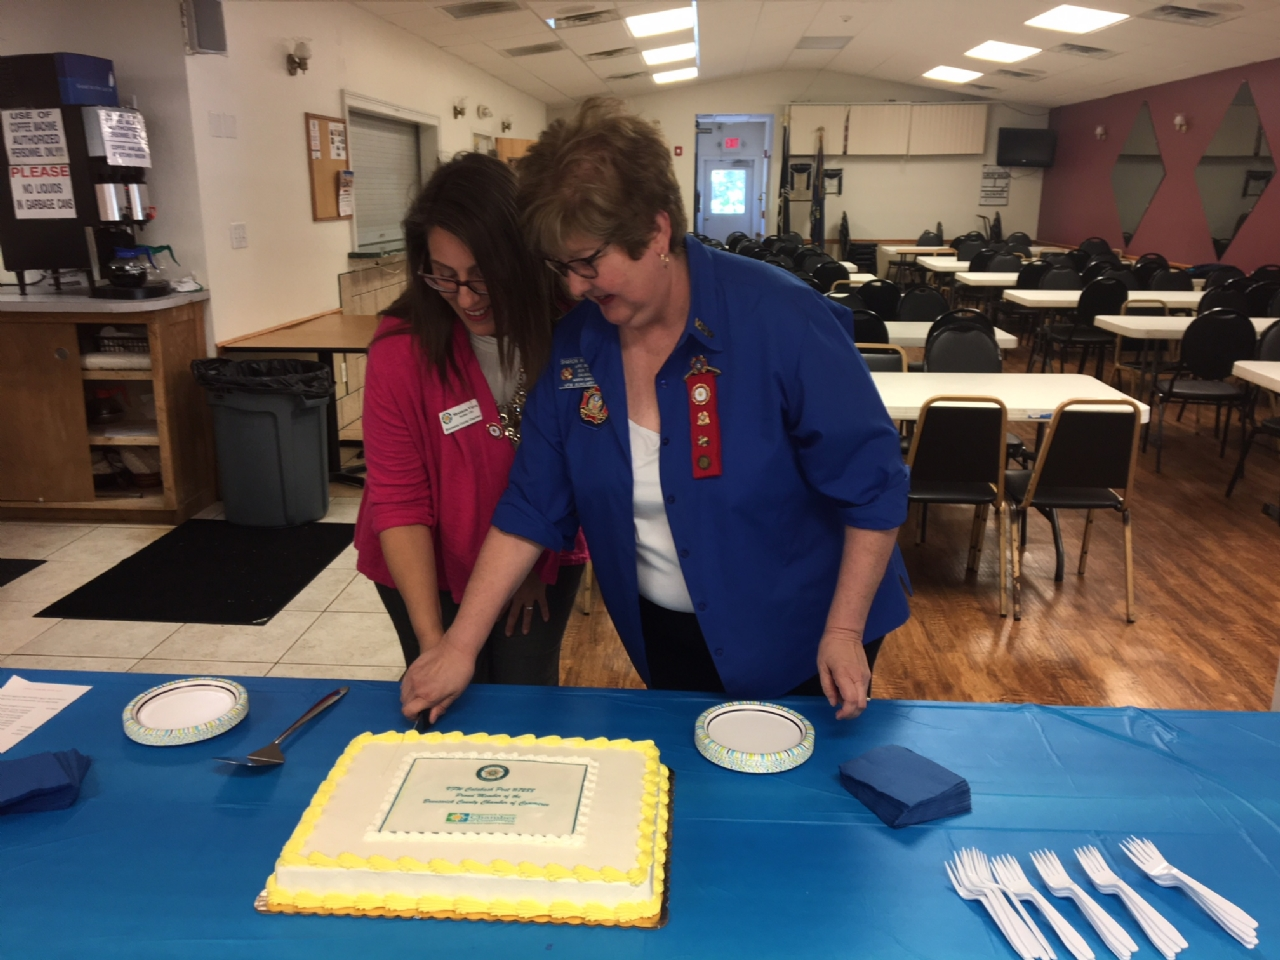 Shannon Viera, President/CEO, Brunswick County Chamber of Commerce on the left and Sharon Kossler, President, VFW Calabash Post #7288 Auxiliary cut the cake following the ribbon cutting ceremony.